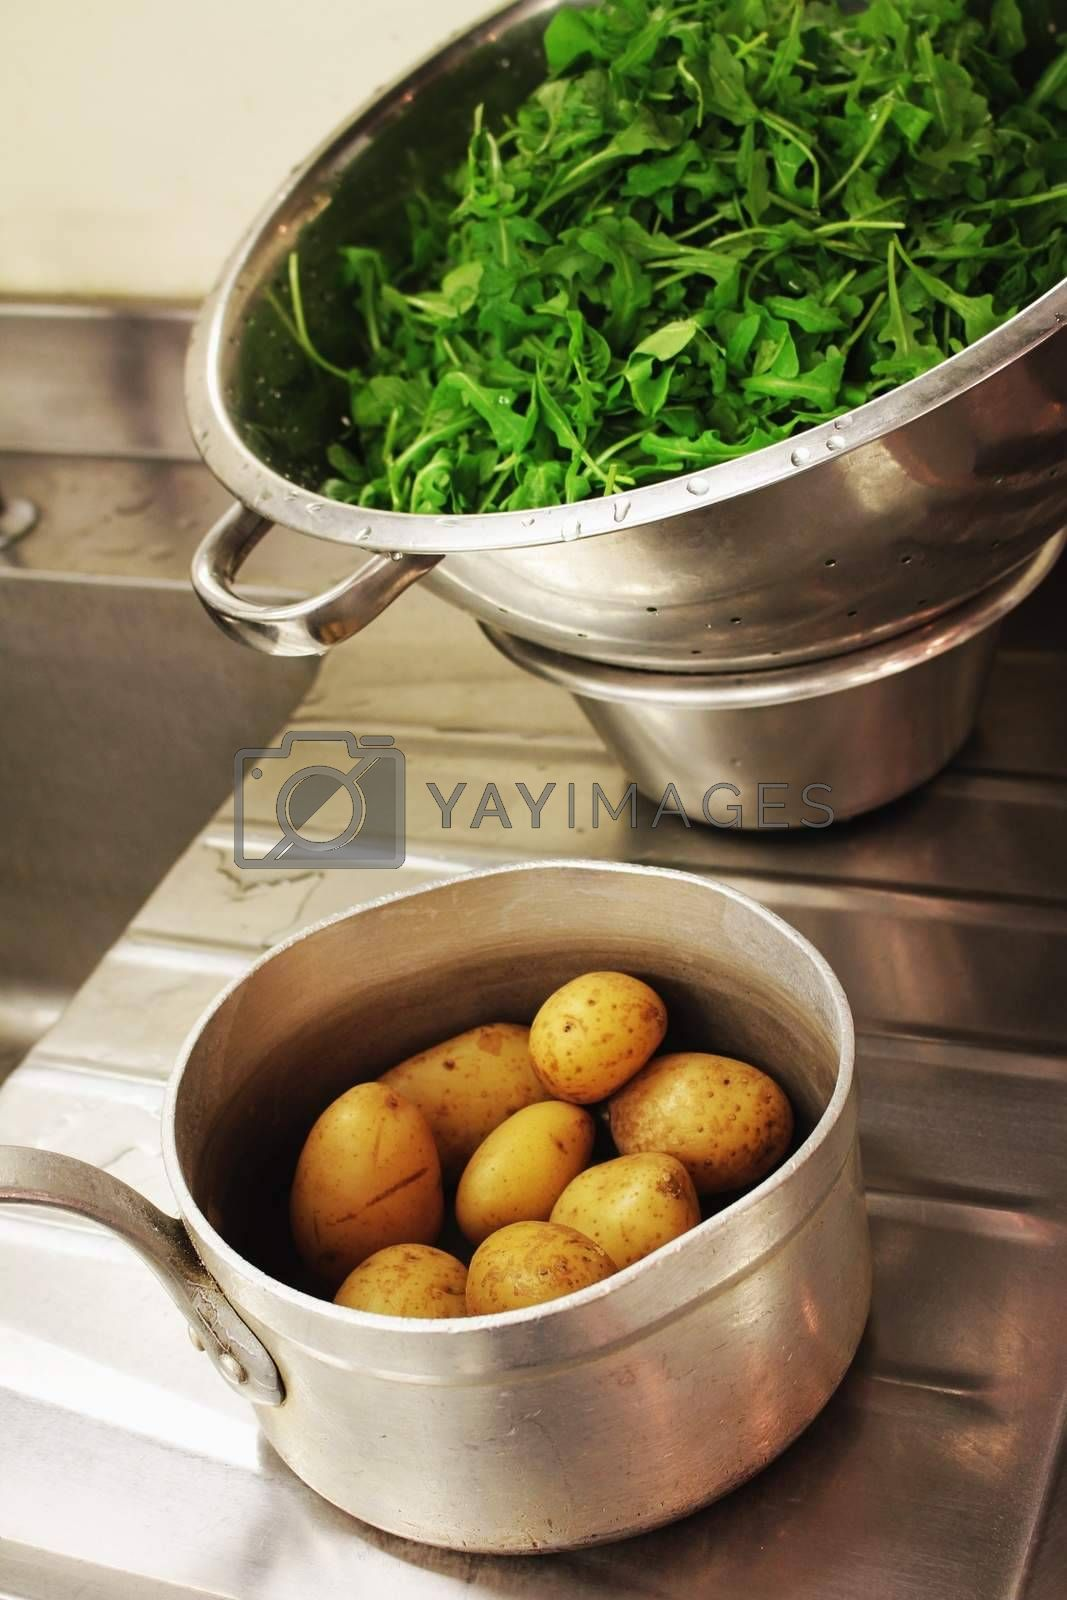 preparing vegetables in kitchen